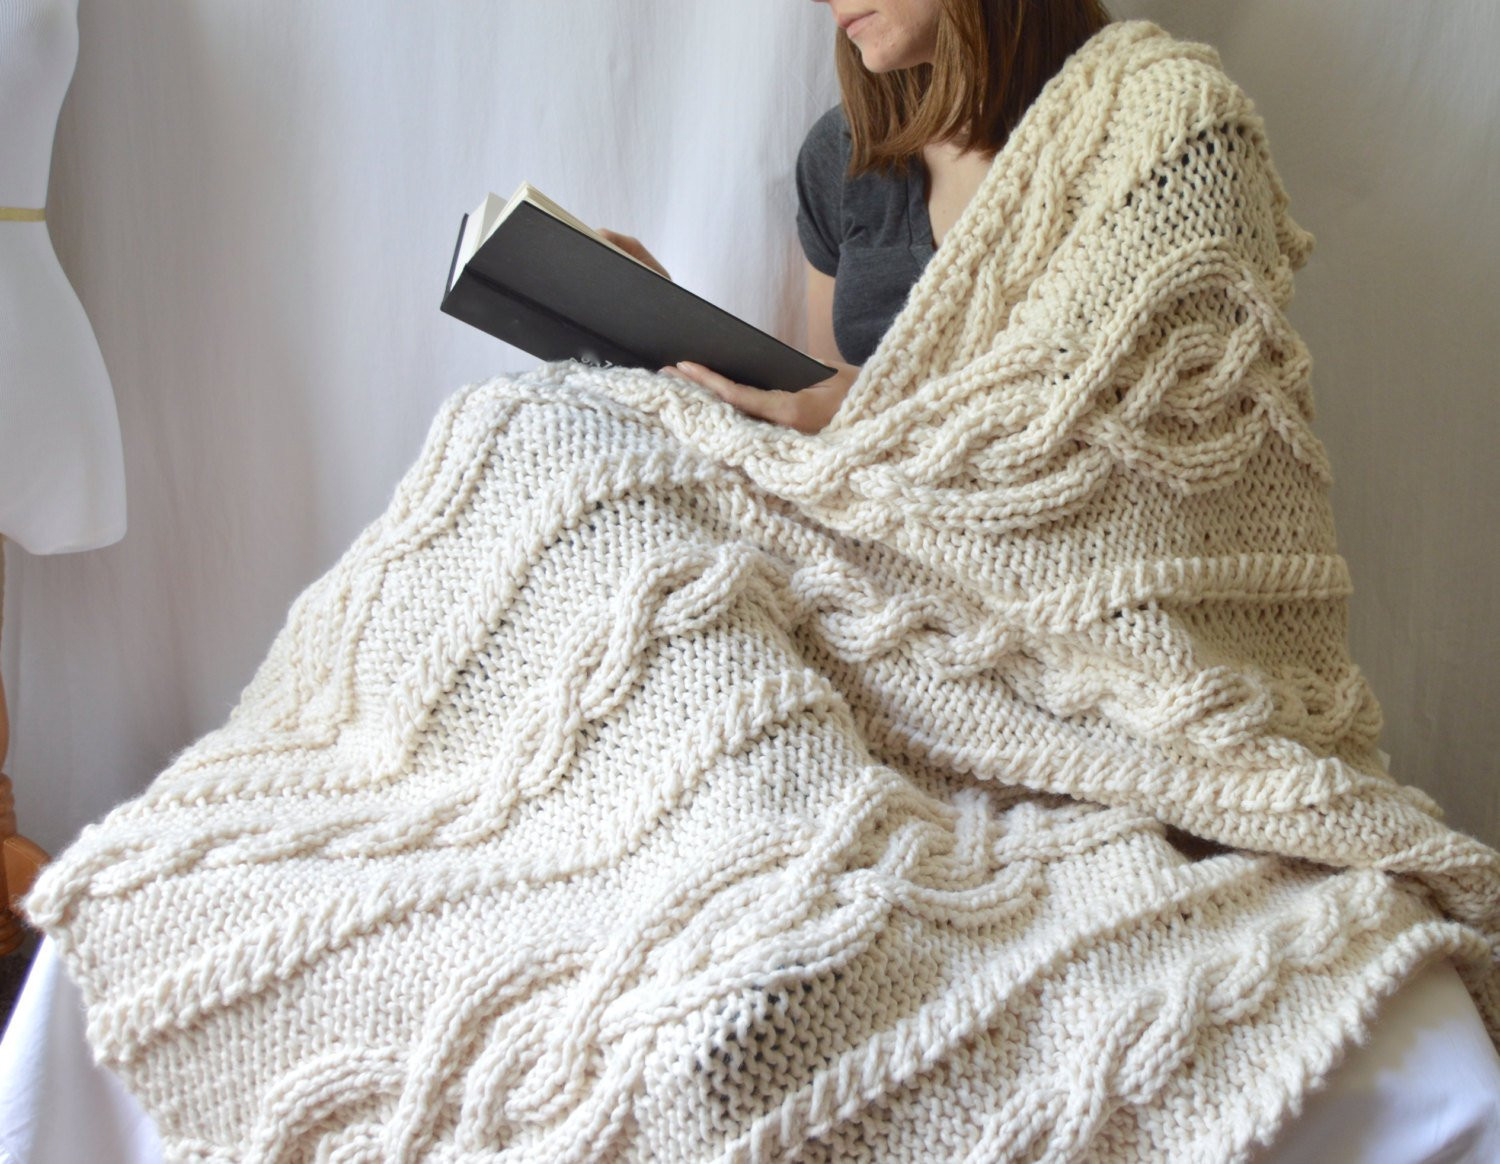 Knit Throw Blanket Awesome Chunky Wool Blend Knitted Blanket Throw Blanket Cable Knit Of New 48 Pictures Knit Throw Blanket